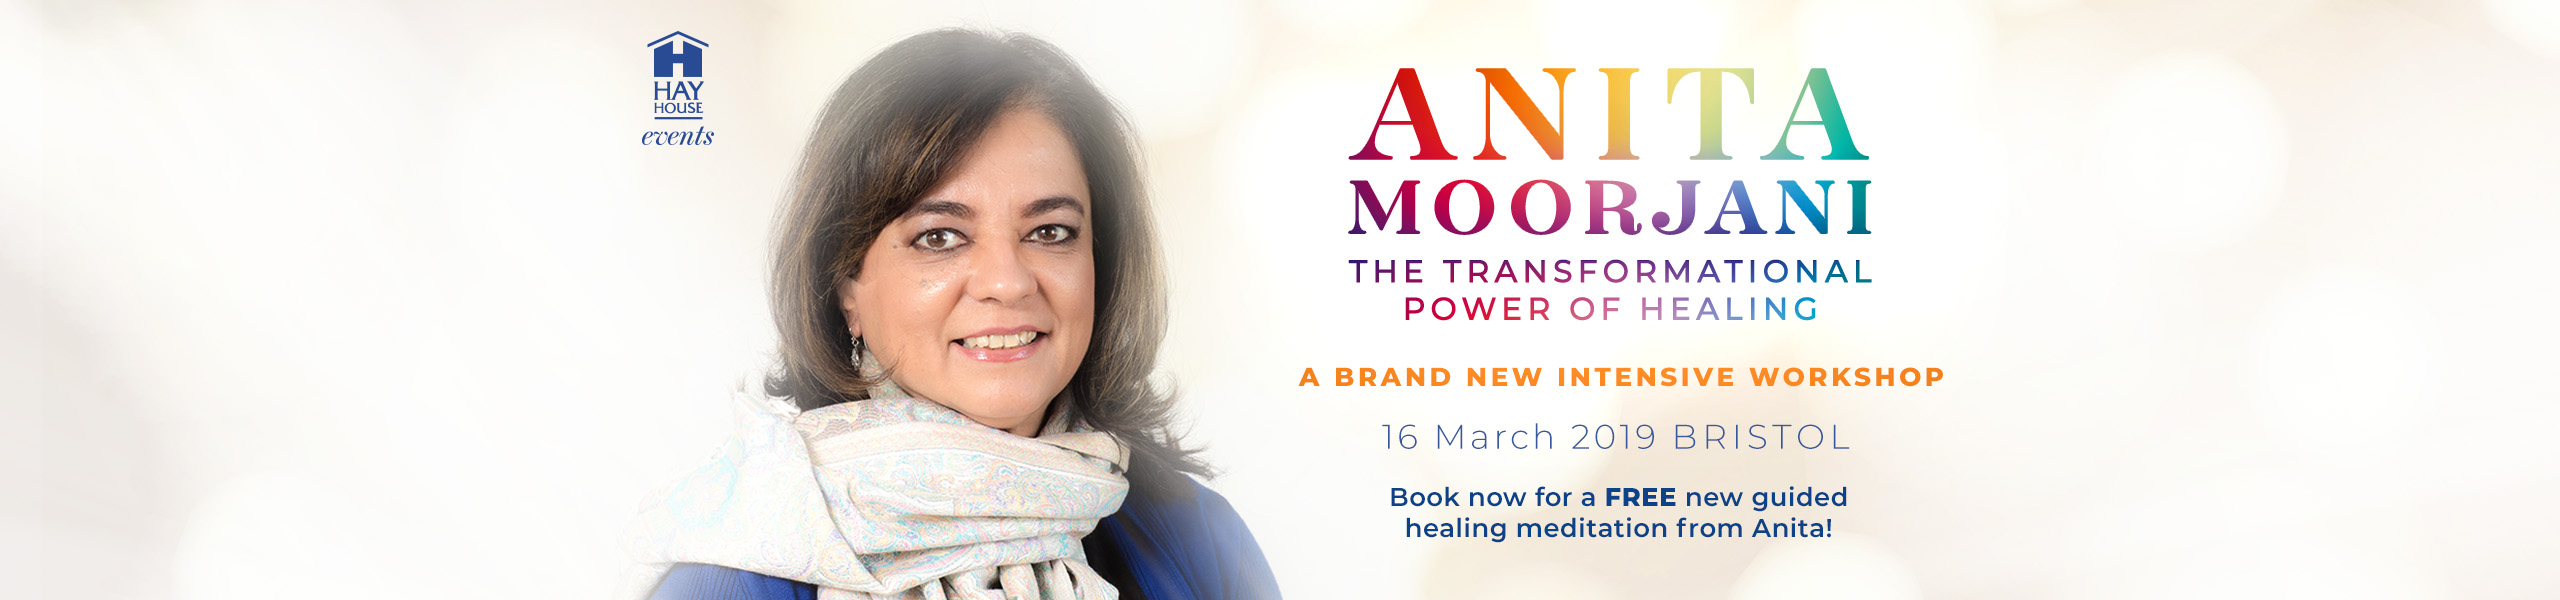 Healing Through the Power of Transformation with Anita Moorjani (VIP)